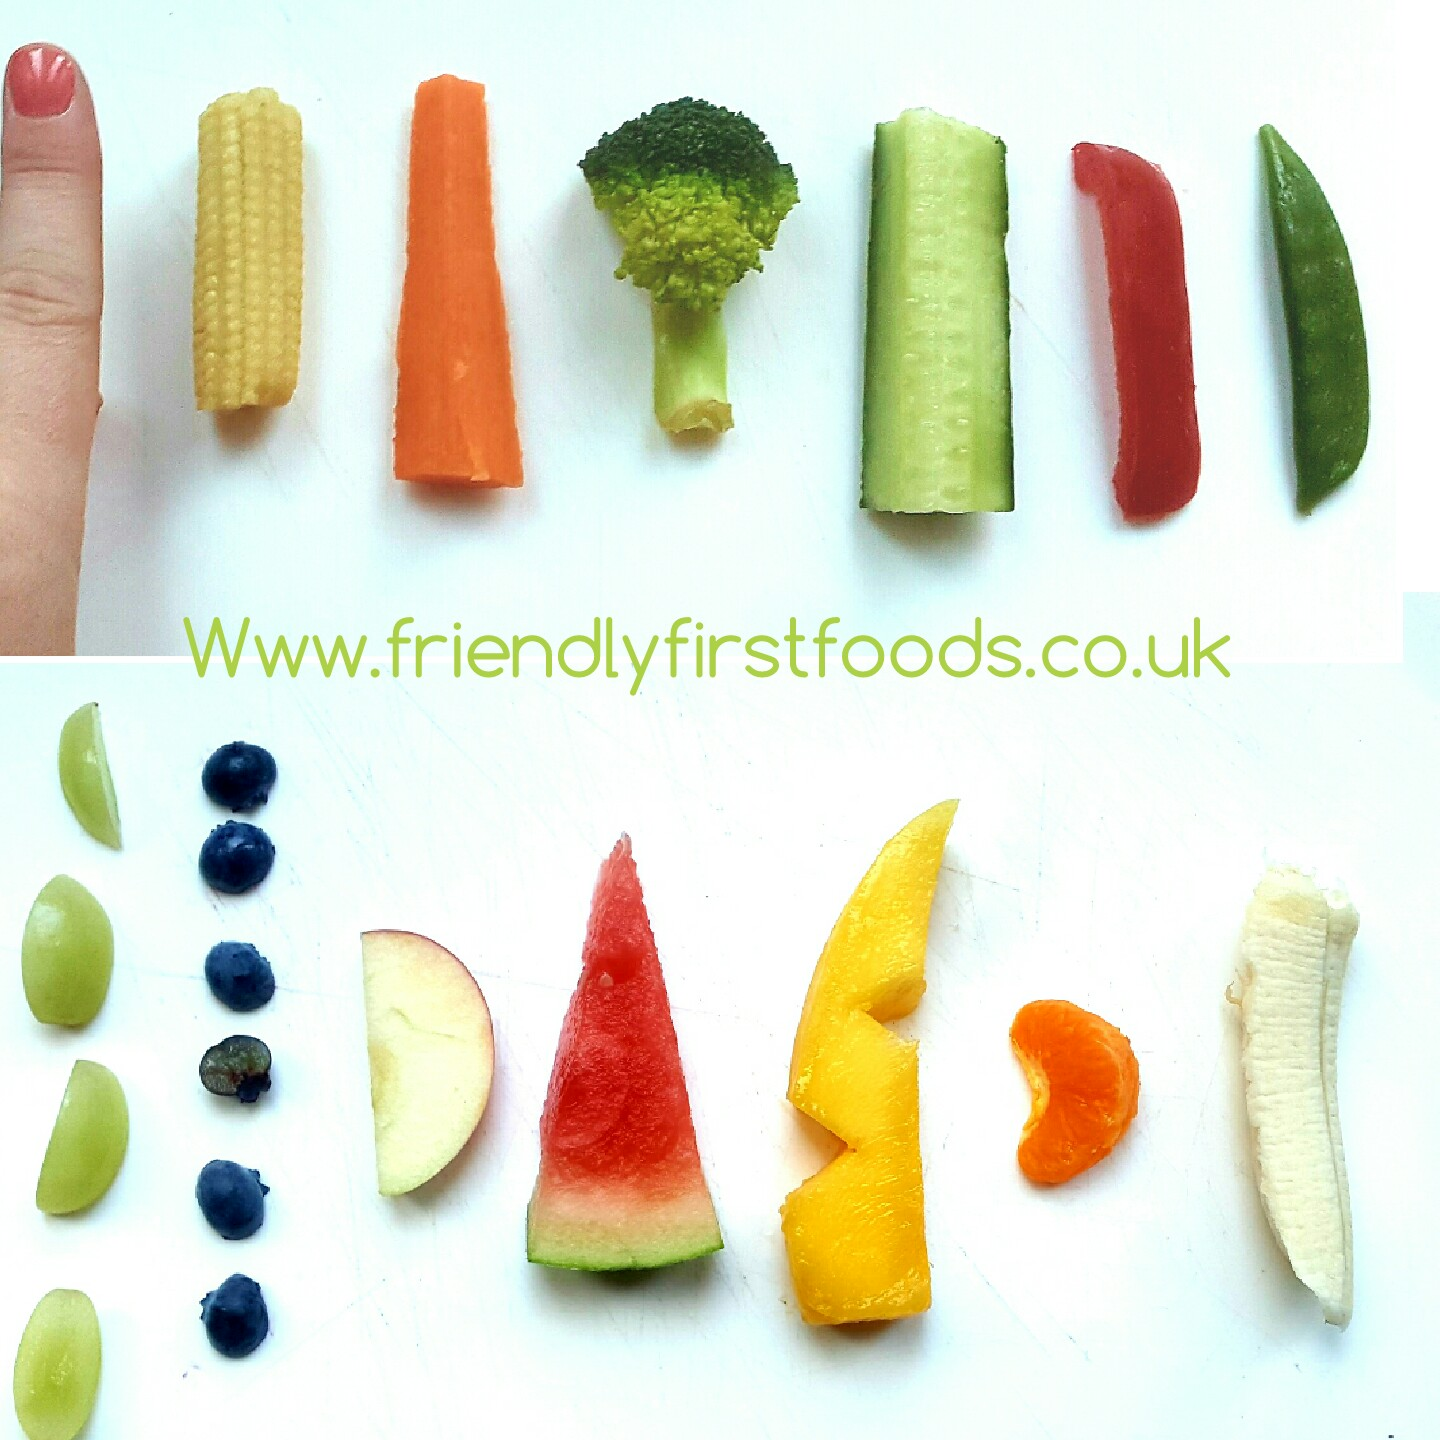 Blw 6 Meses Finger Food Size Guide And A Really Useful Banana Hack